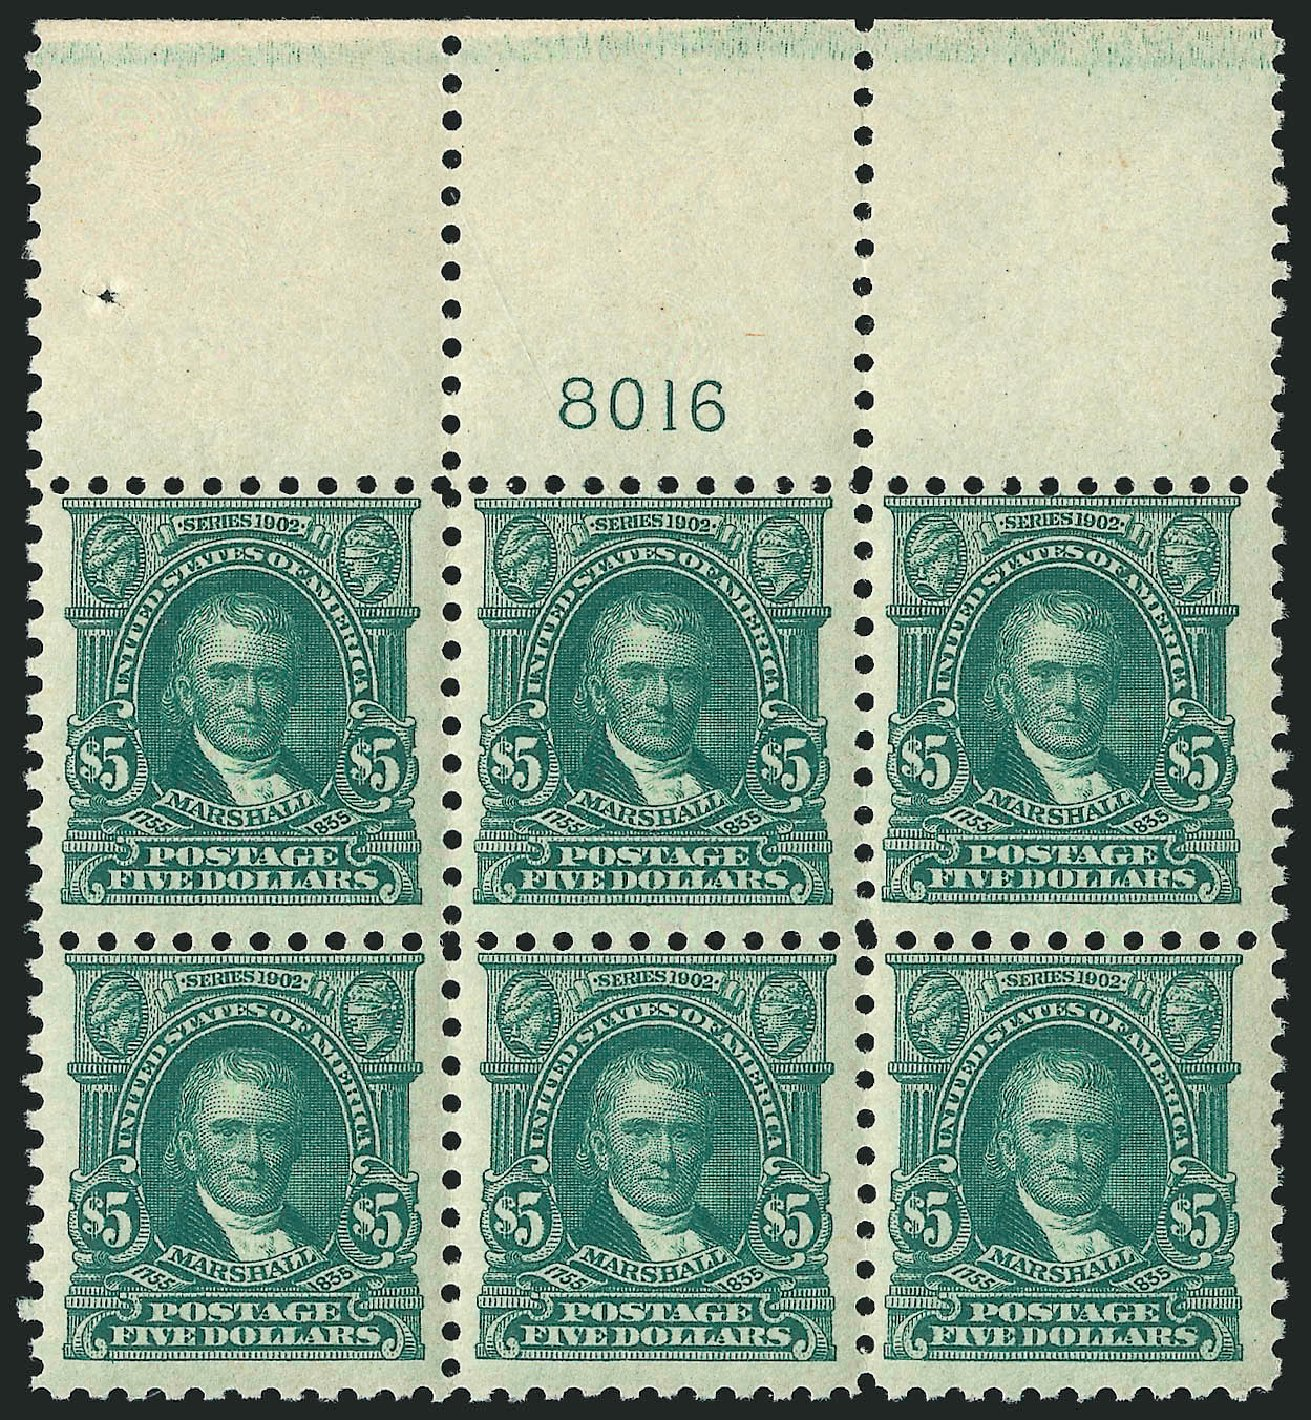 US Stamp Values Scott Catalogue # 480 - 1917 US$5.00 Marshall Perf 10. Robert Siegel Auction Galleries, Apr 2015, Sale 1096, Lot 734